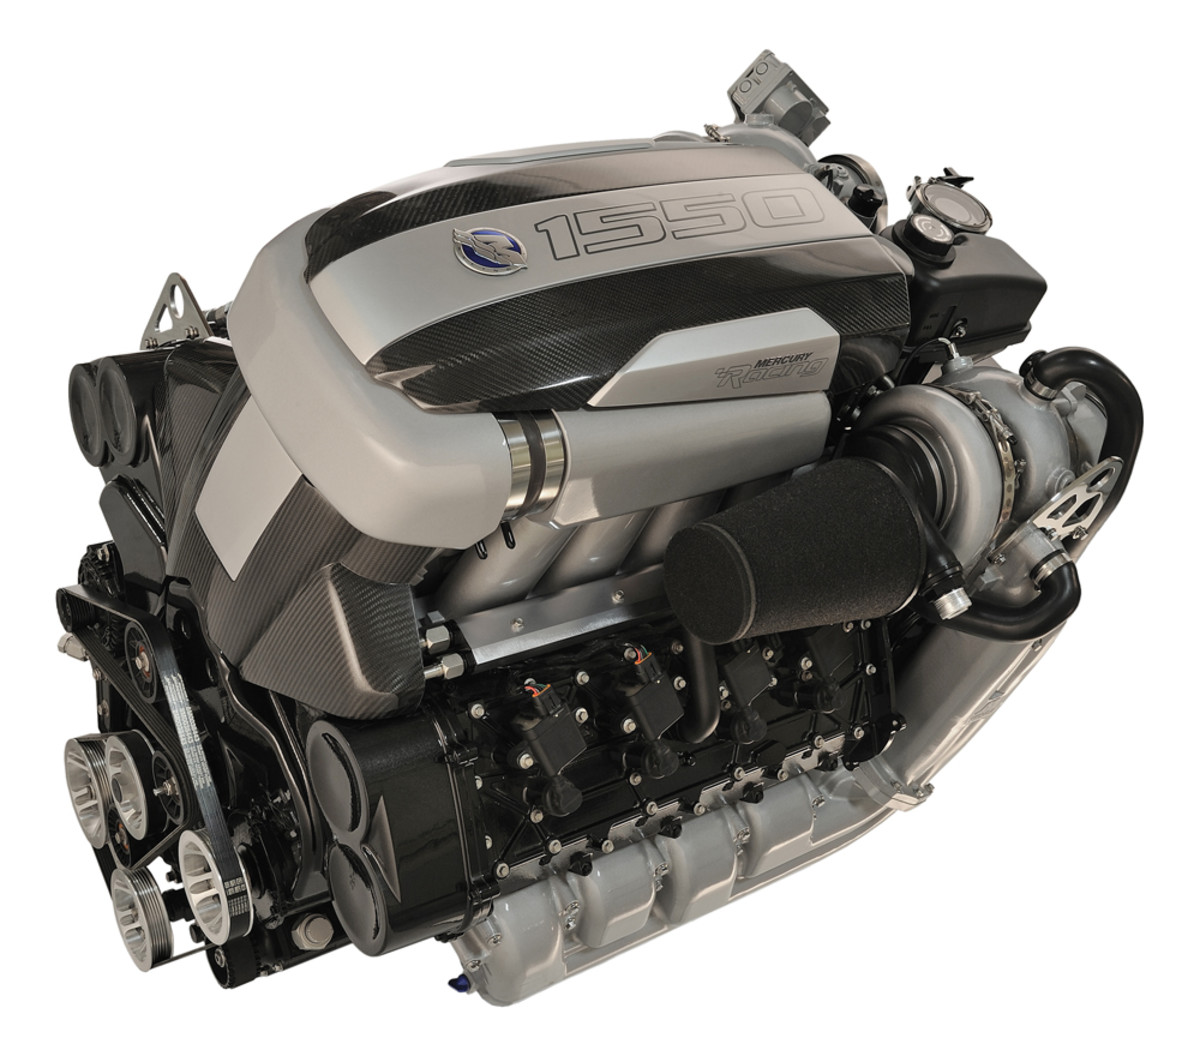 Mercury Racing came out with a gasoline sterndrive engine that can switch between 1,350 and 1,550 hp.